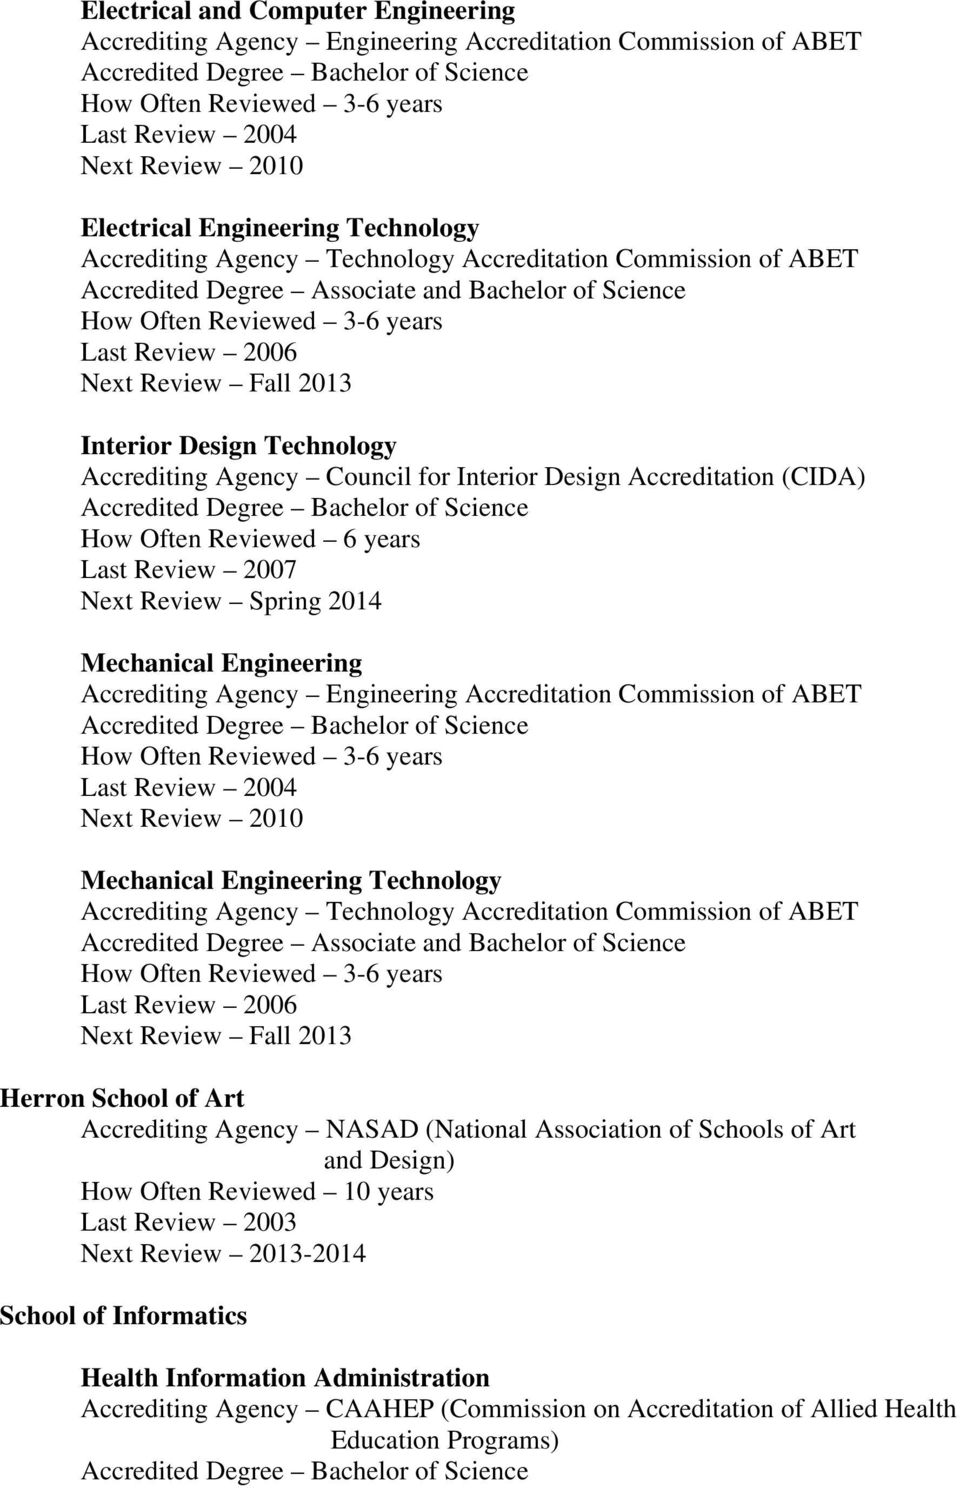 Commission of ABET Mechanical Engineering Technology Accredited Degree Associate and Bachelor of Science Herron School of Art Accrediting Agency NASAD (National Association of Schools of Art